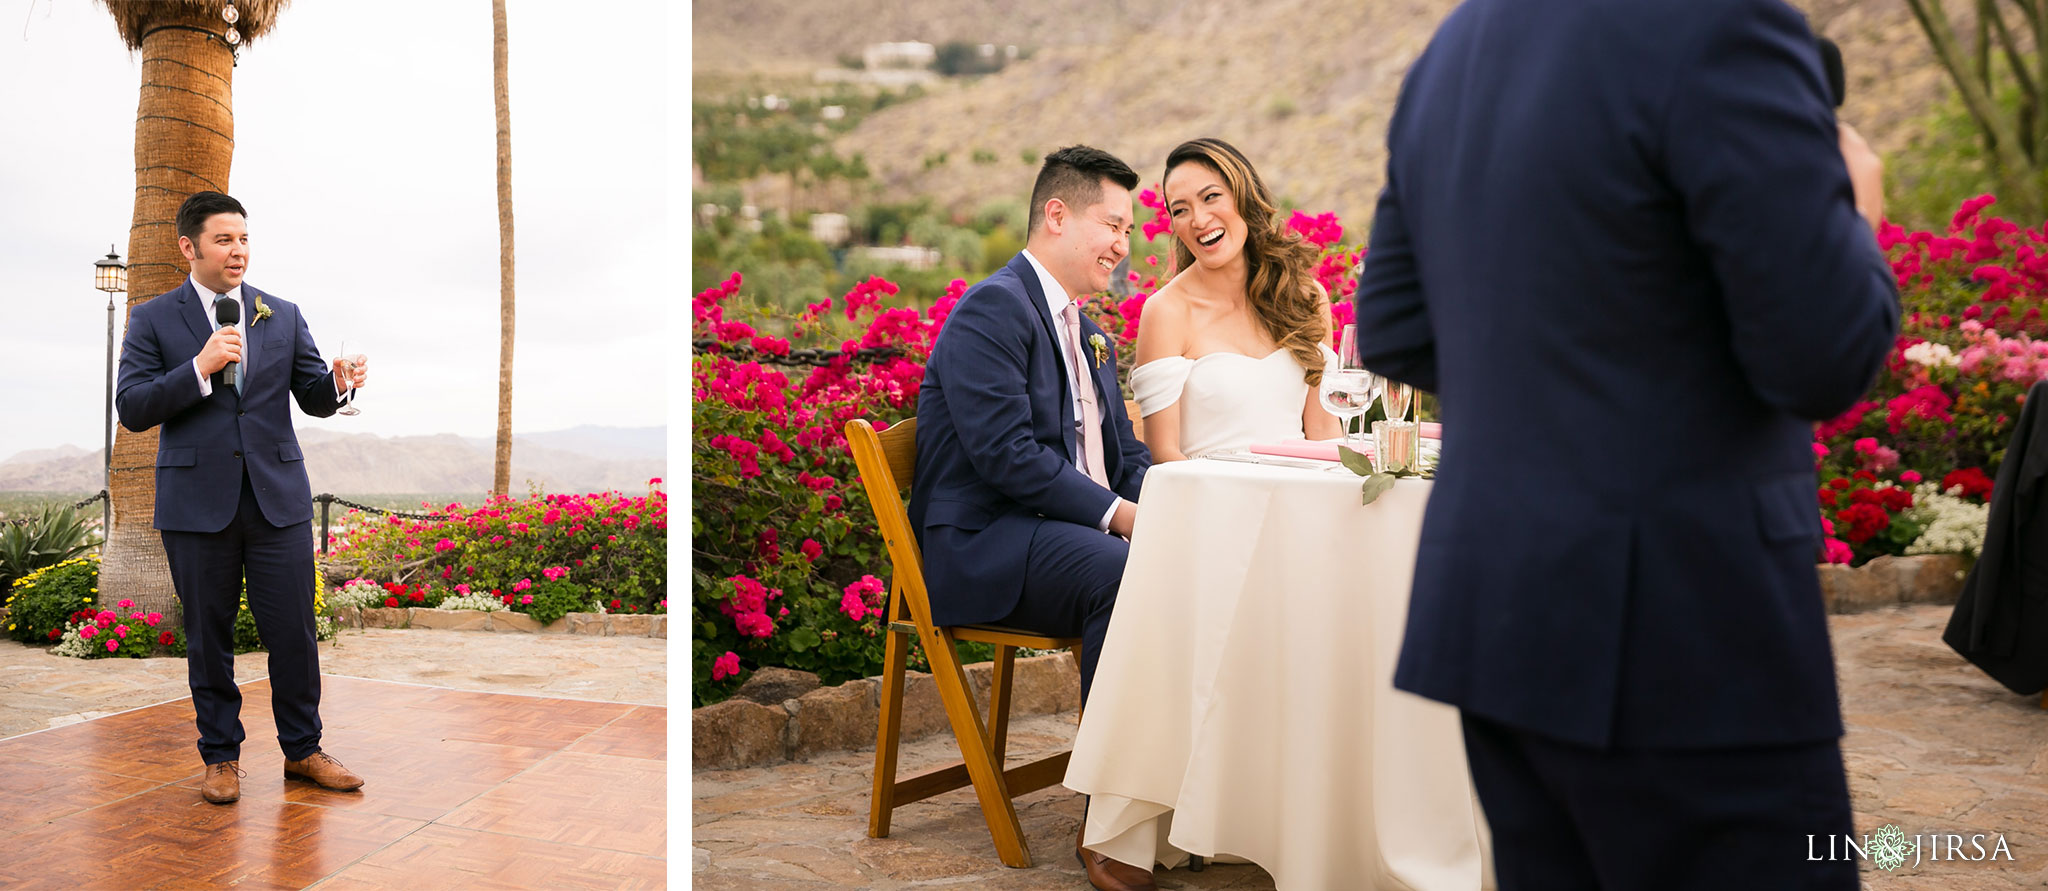 31 odonnell house palm springs wedding reception photography